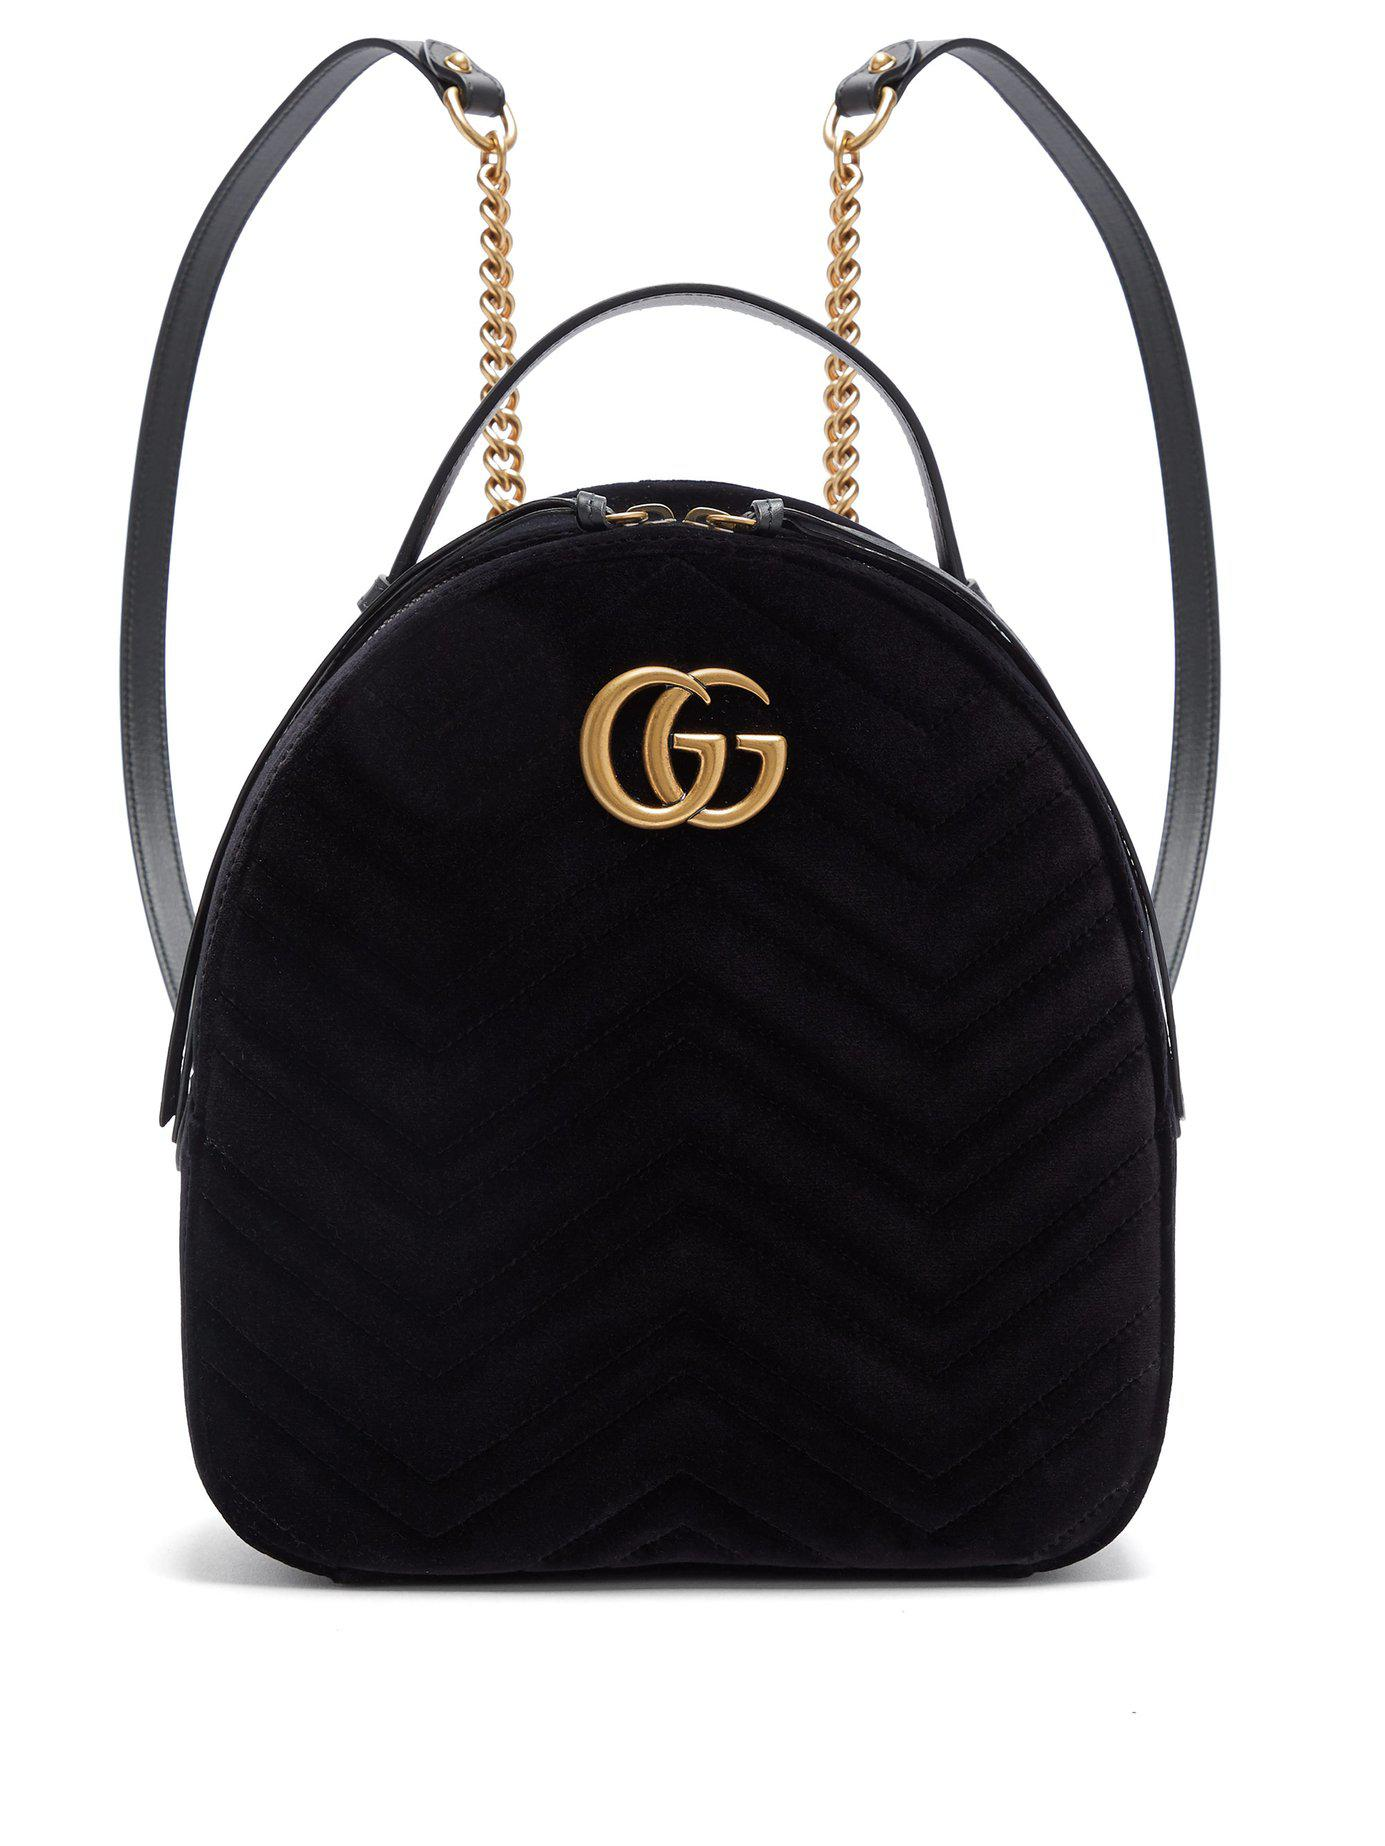 Lyst - Gucci Gg Marmont Velvet Backpack in Black 7a31b771b1e85